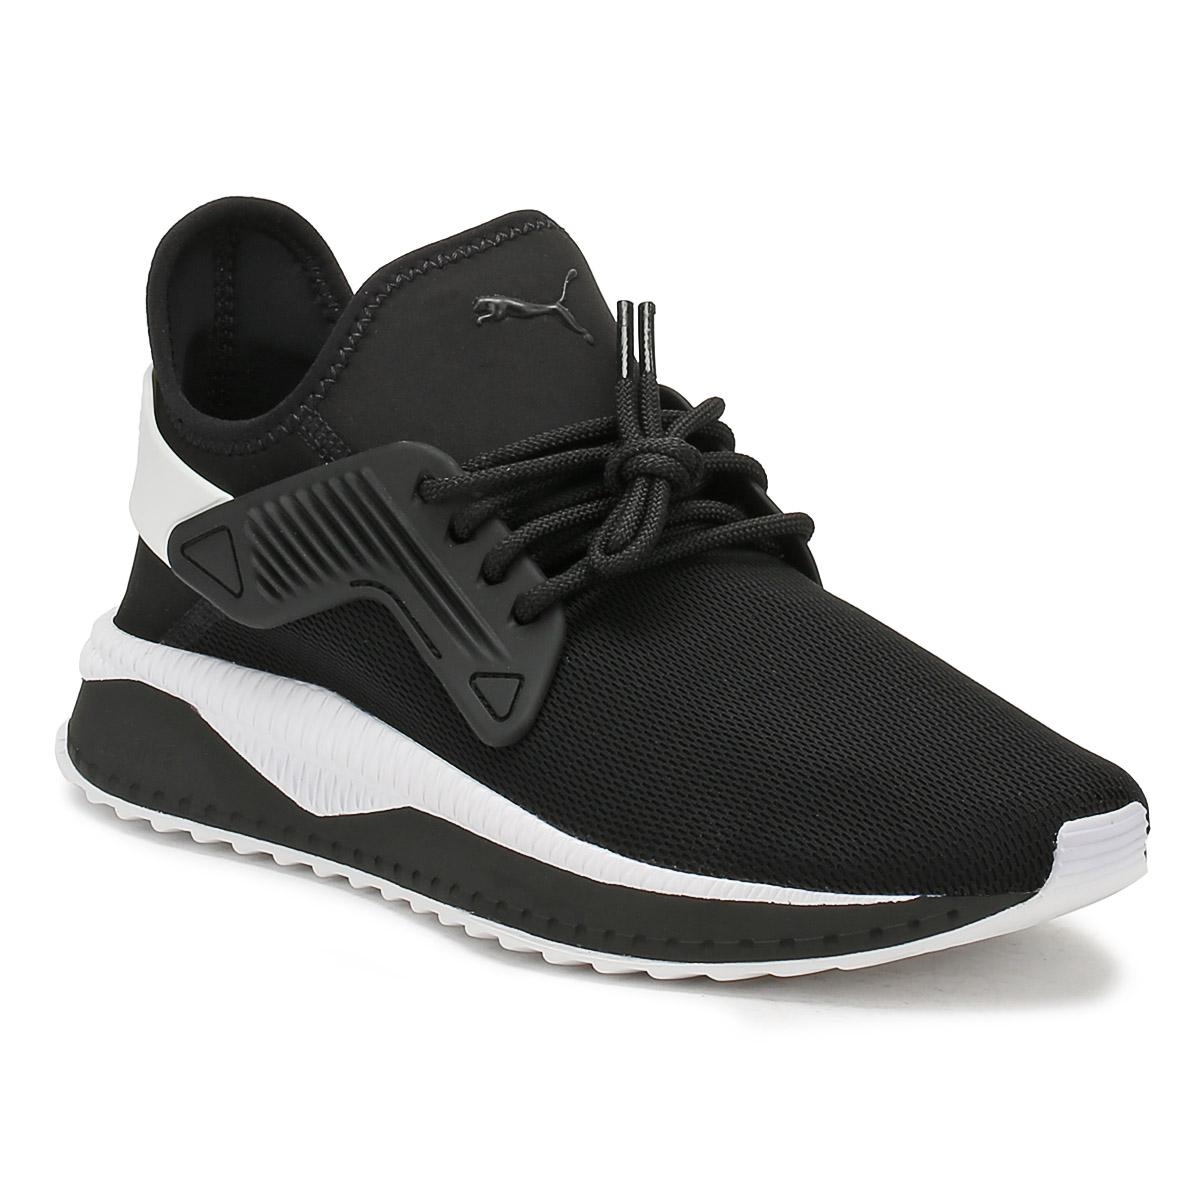 Cage Cage slot 1a0wfnq5g Black Tsugi In In In Trainers Puma Black 36539401 8H5qAUUnW